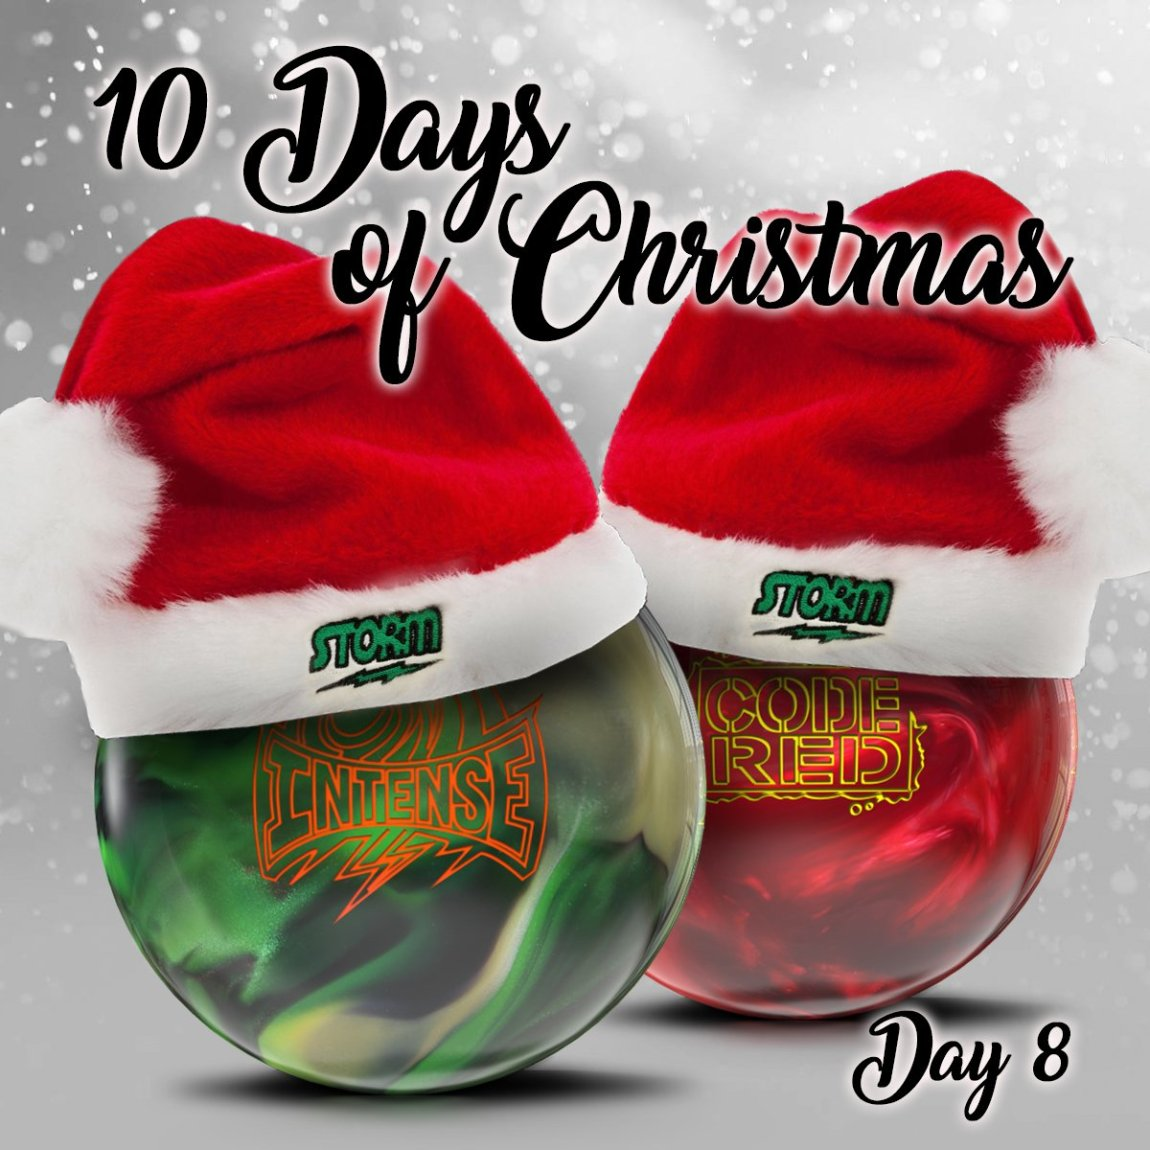 test Twitter Media - It's #Day8 of our 10 Days of Christmas giveaway!   Enter: https://t.co/vrrPl8hLI1 https://t.co/cxdMbaFxM9